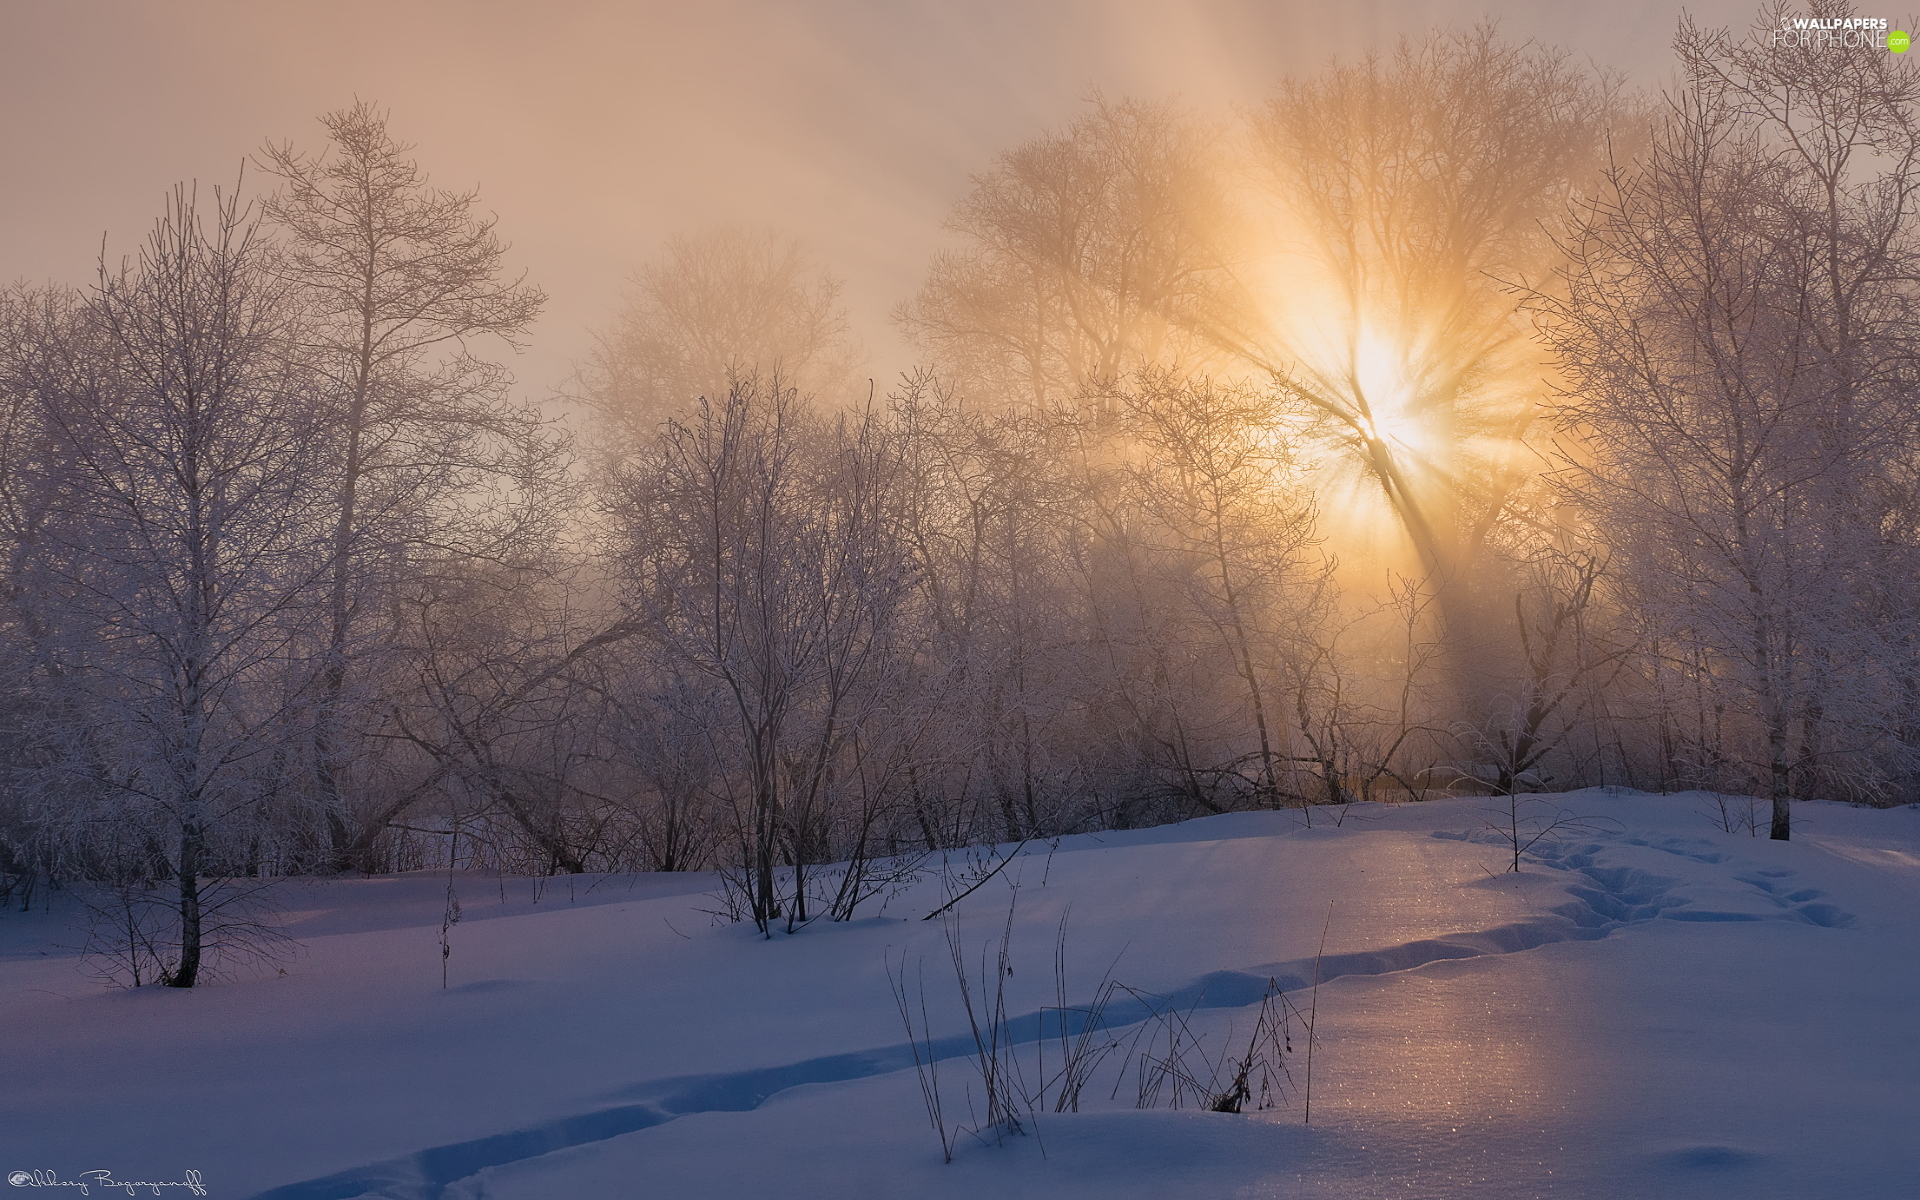 frosty, winter, viewes, light breaking through sky, trees, Fog